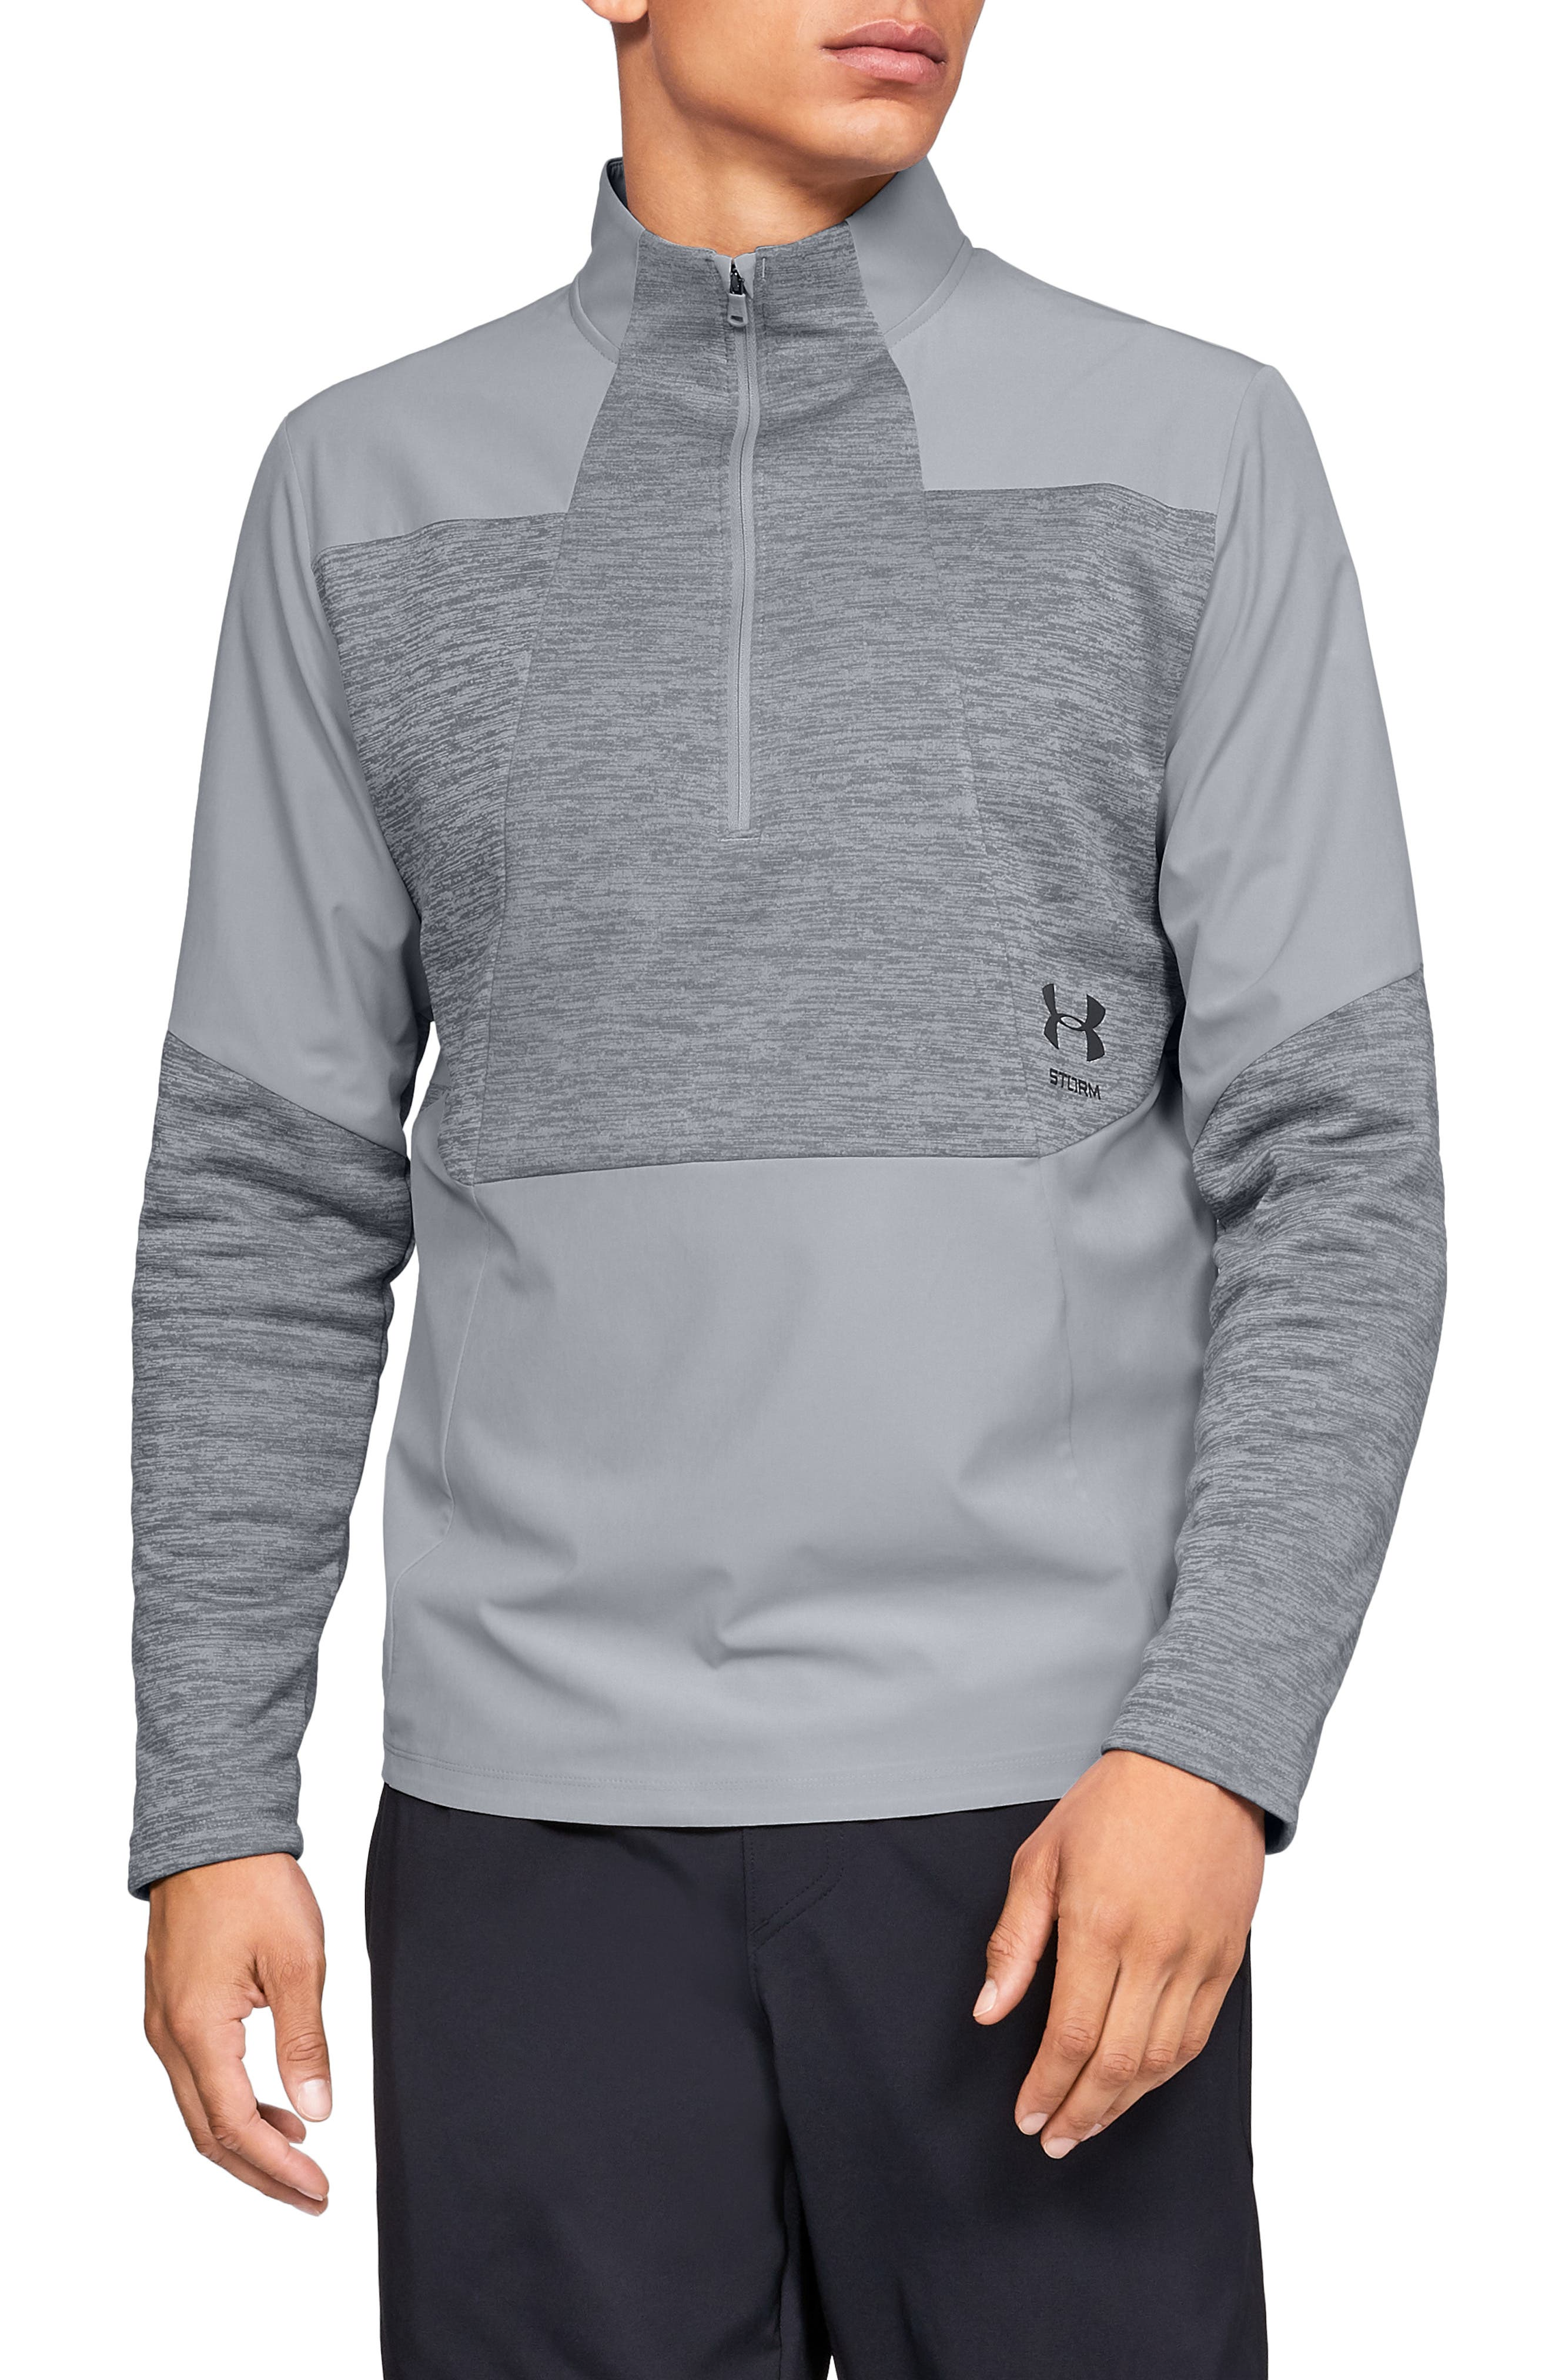 UNDER ARMOUR, Storm Cyclone Water Repellent Quarter Zip Pullover, Main thumbnail 1, color, OVERCAST GREY/ BLACK